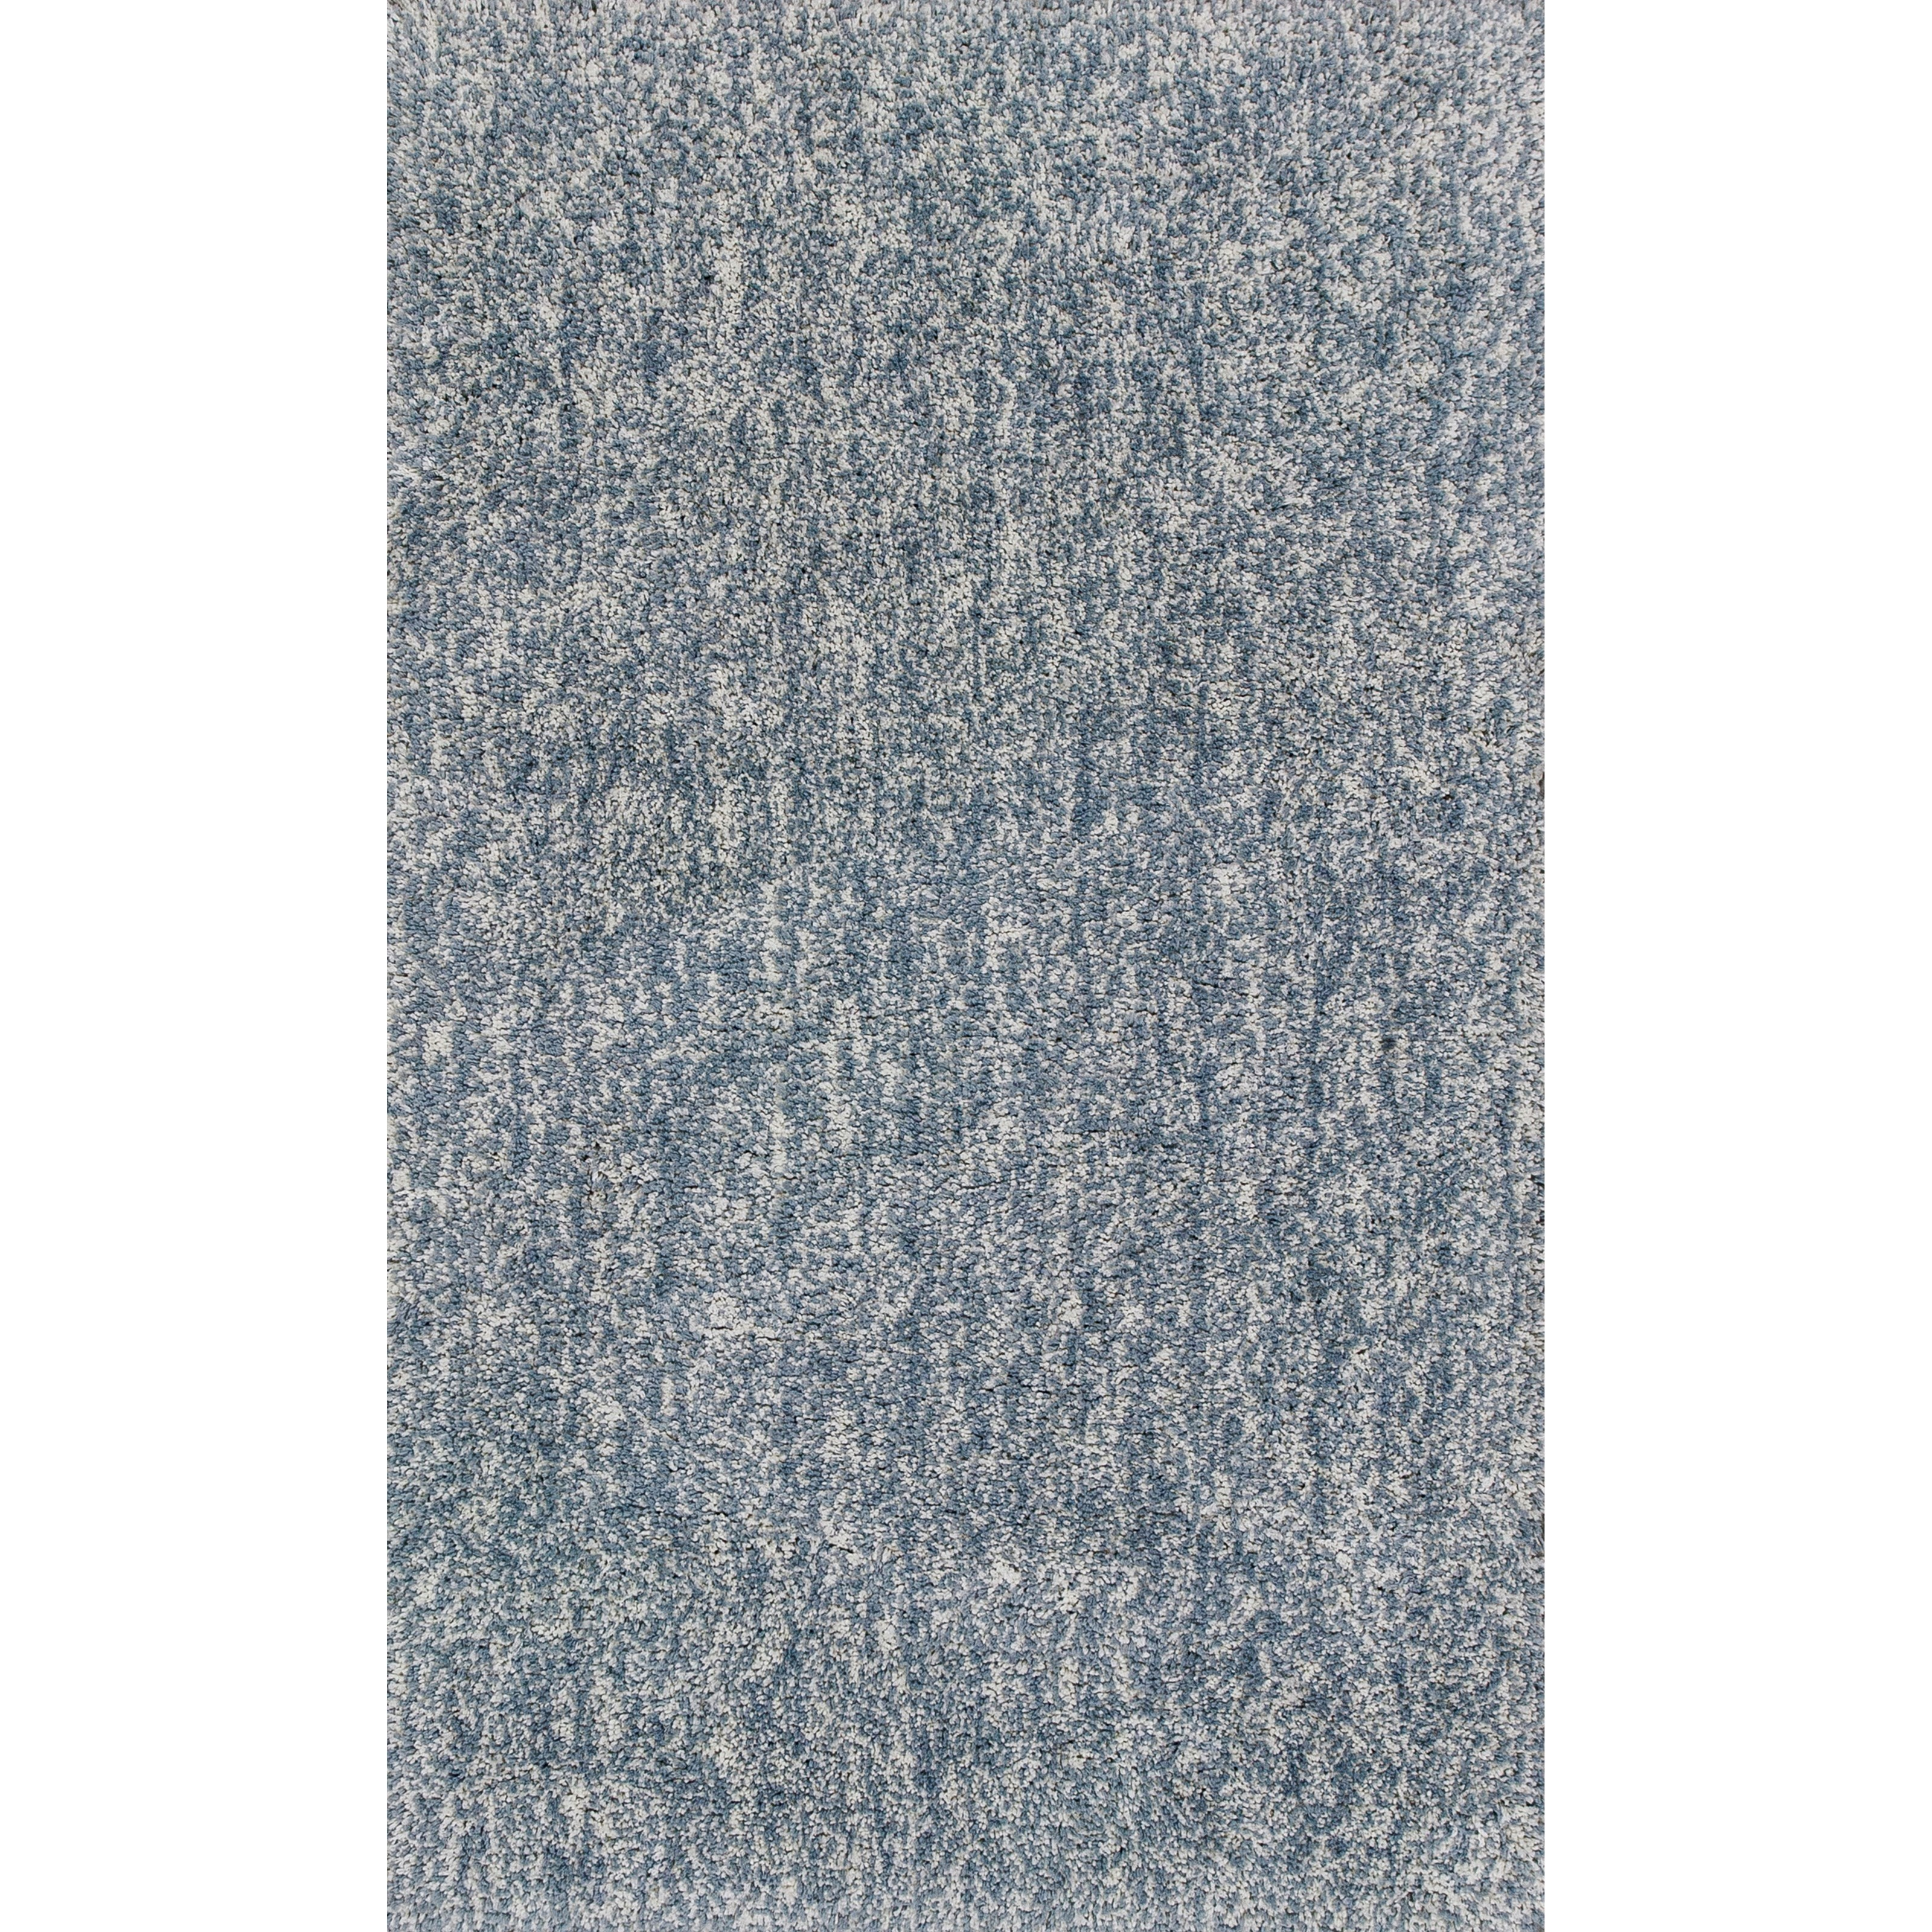 Bliss 9' X 13' Slate Heather Shag Area Rug by Kas at Zak's Home